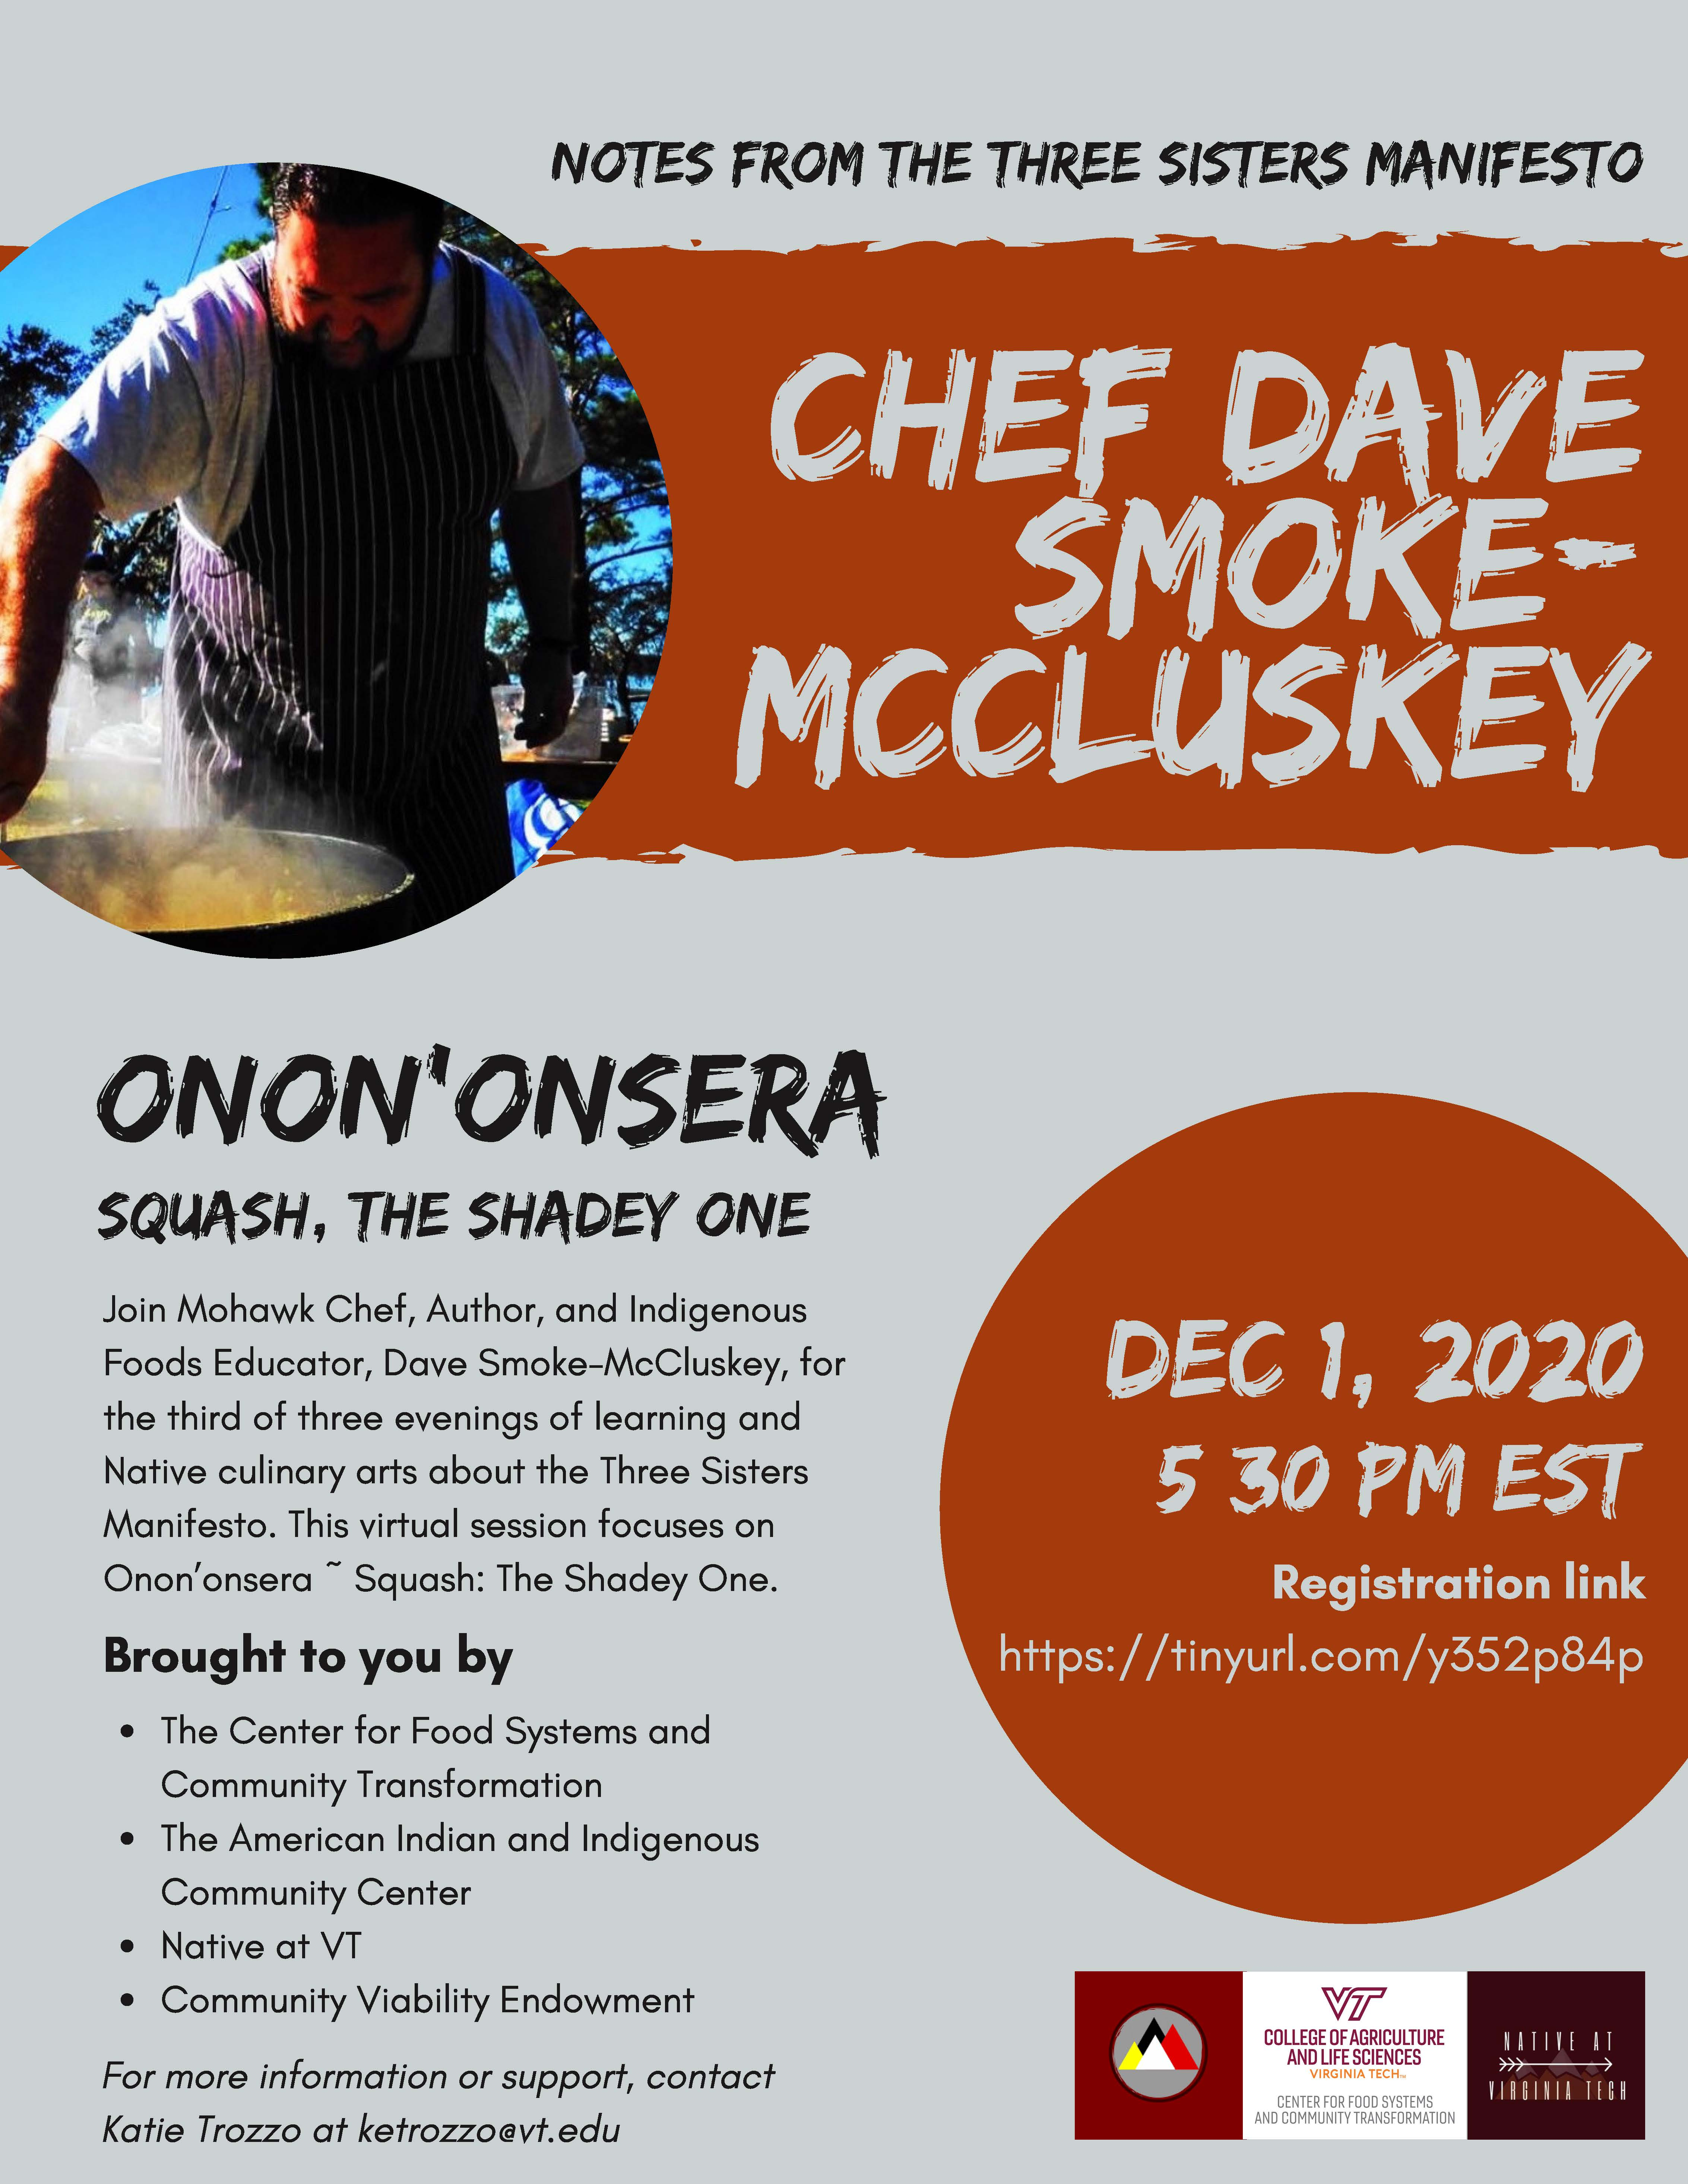 Join Mohawk Chef, Author, and Indigenous Foods Educator, Dave Smoke-McCluskey, for the third of three evenings of learning and Native culinary arts about the Three Sisters Manifesto. This virtual session focuses on Onon'onsera ~ Squash: The Shadey One.  Brought to you by The Center for Food Systems and Community Transformation, The American Indian and Indigenous Community Center, Native at VT, and Community Viability Endowment